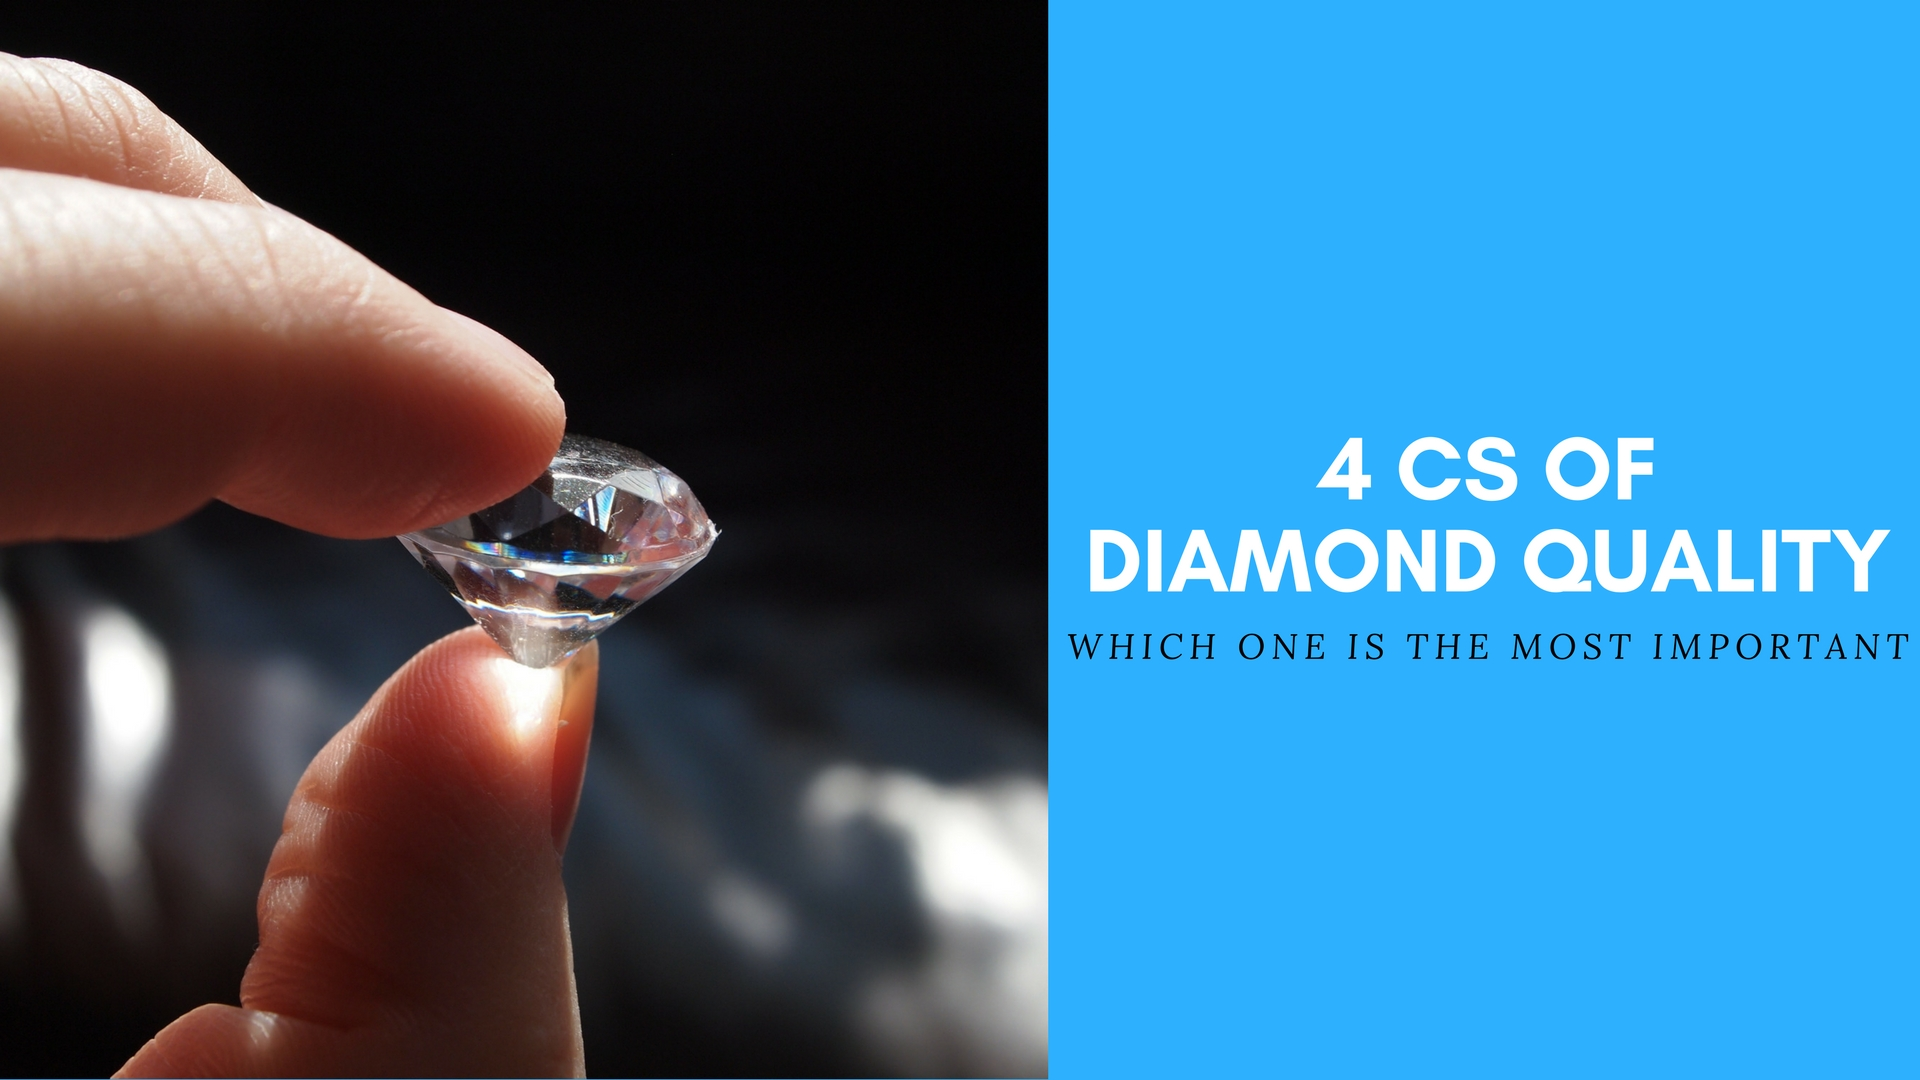 4CS Of Diamond - What is The Most Important of 4 CS - DazzlingRock